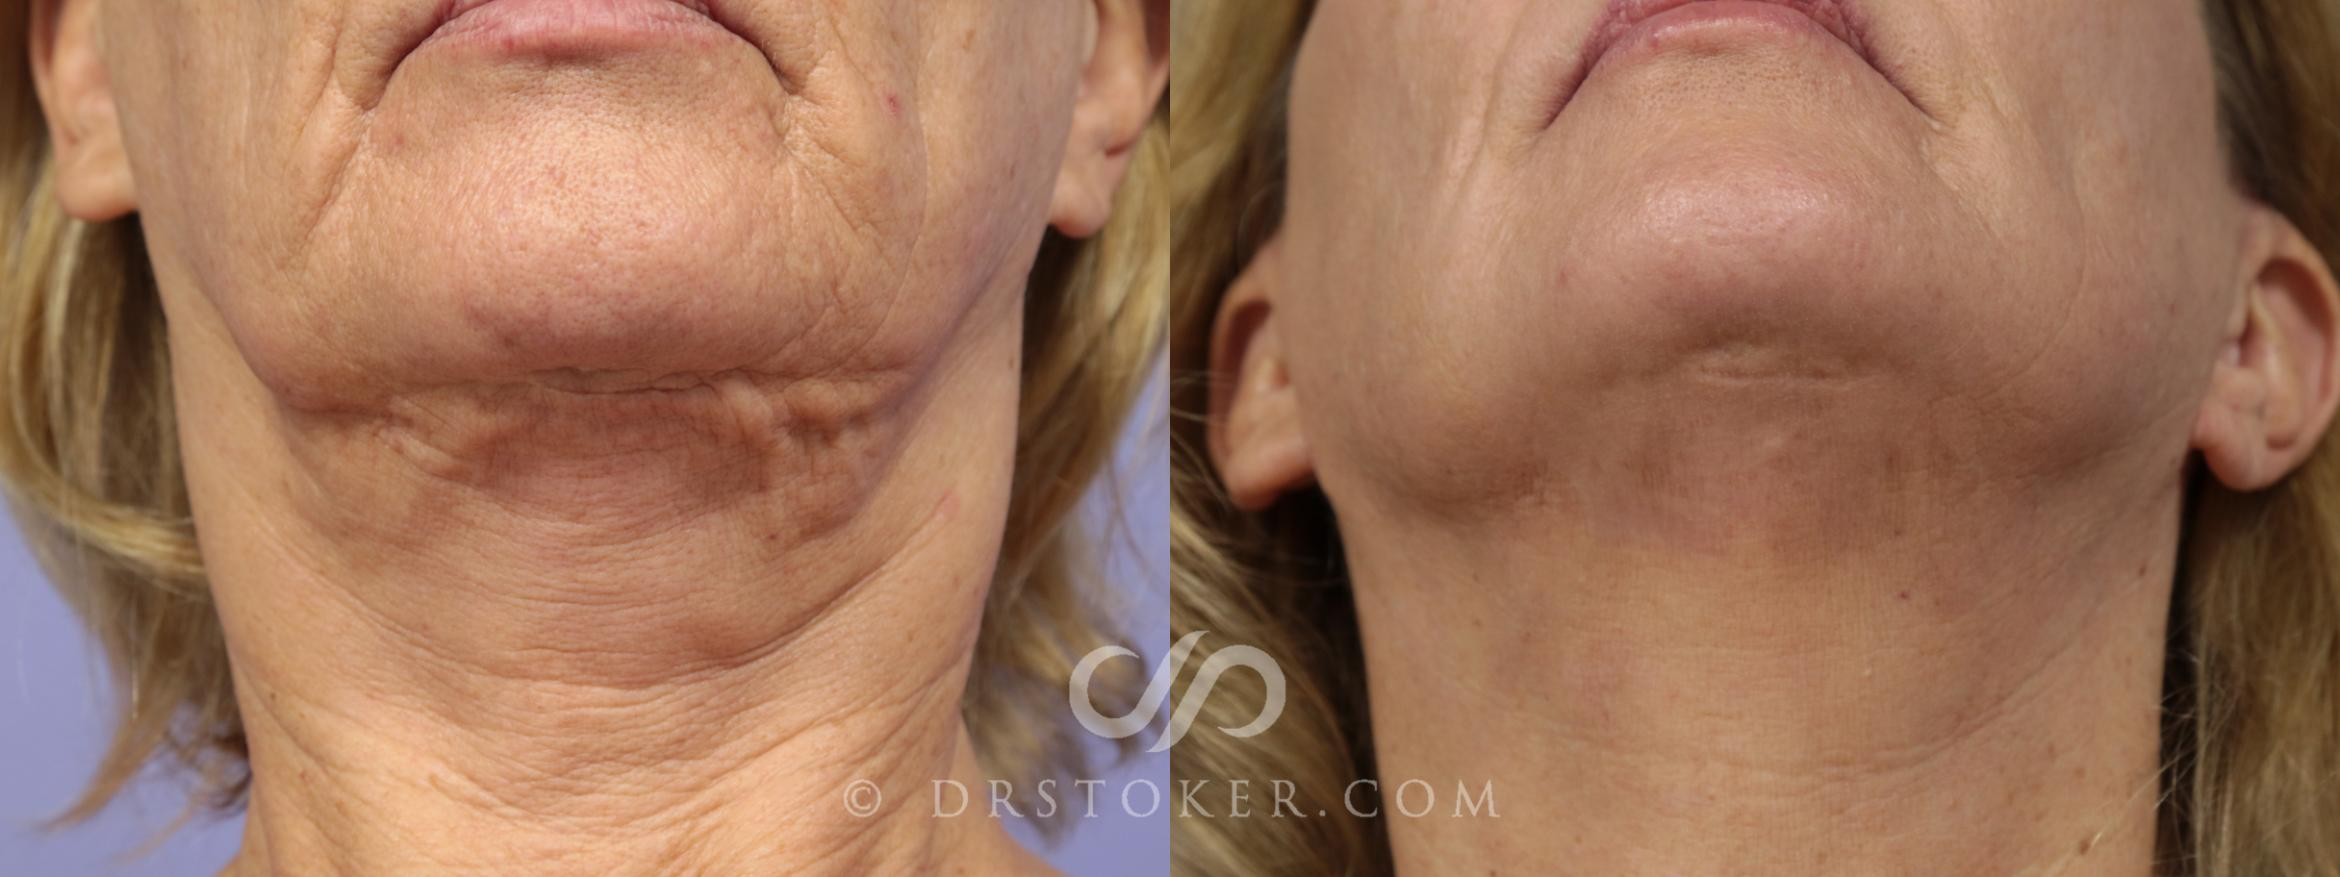 Facelift Incisions (Hidden Scars) Case 1433 Before & After View #1 | Marina del Rey, CA | Dr. David Stoker